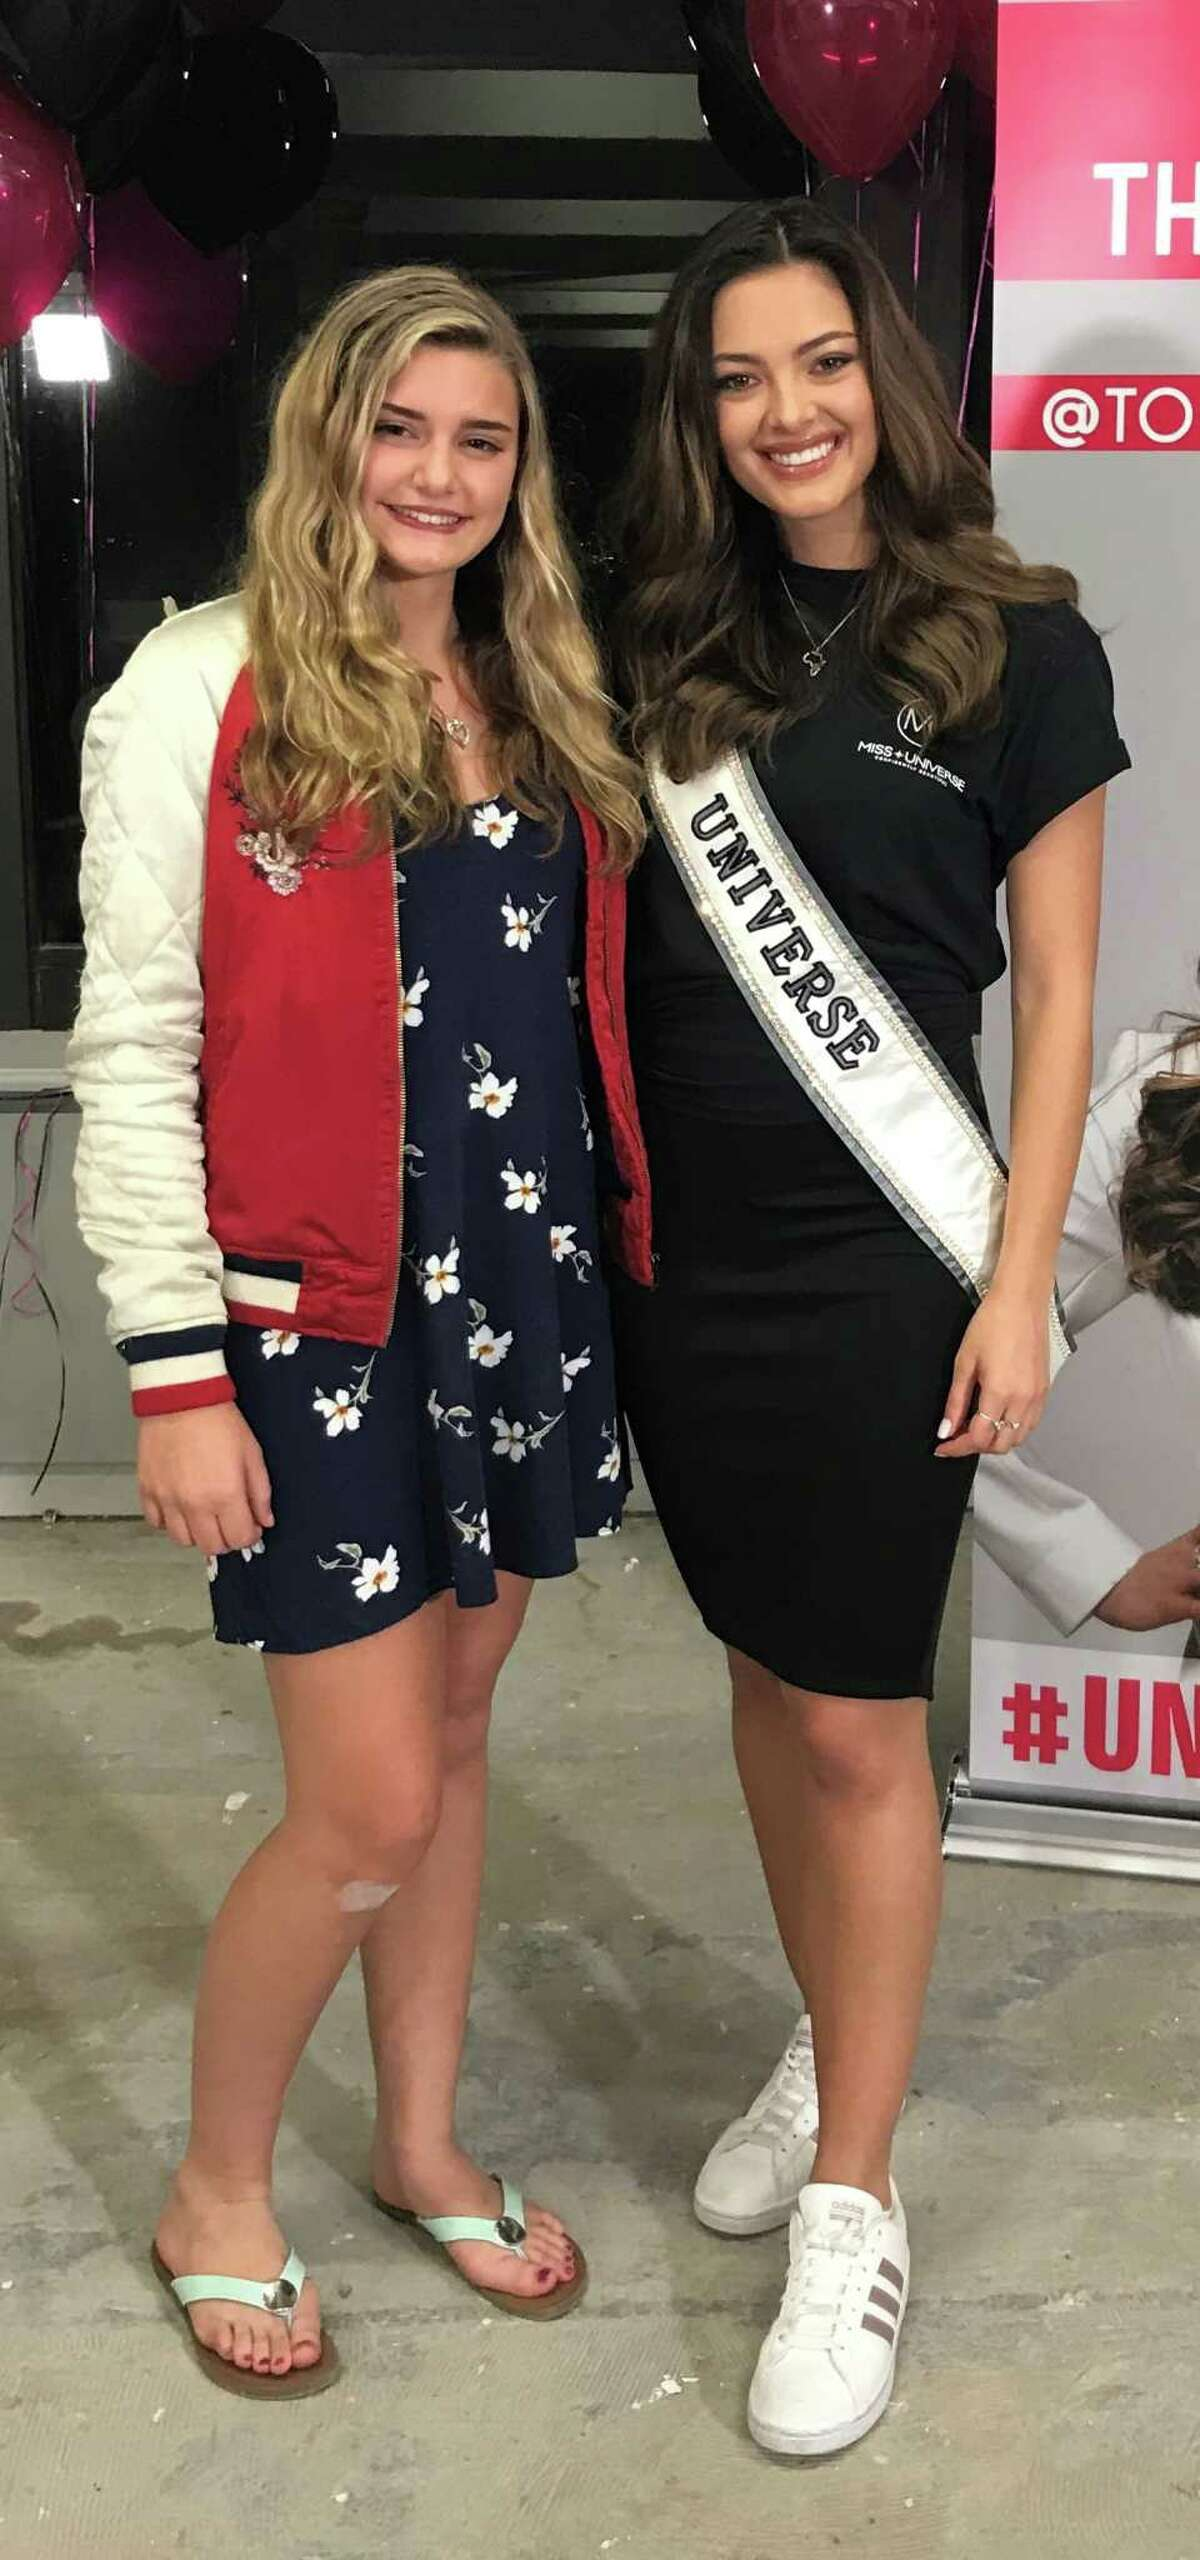 Lois Freemantle, 14, of Nassau, left, is competing in Miss New York Teen USA pageant in Purchase on Jan. 18-20. She attends Columbia High School in East Greenbush and volunteered at the Nassau resource food bank. She plays violin, takes Tae Kwon Do as a yellow belt. She recently got to meet Miss Universe Demi Leigh Peters.